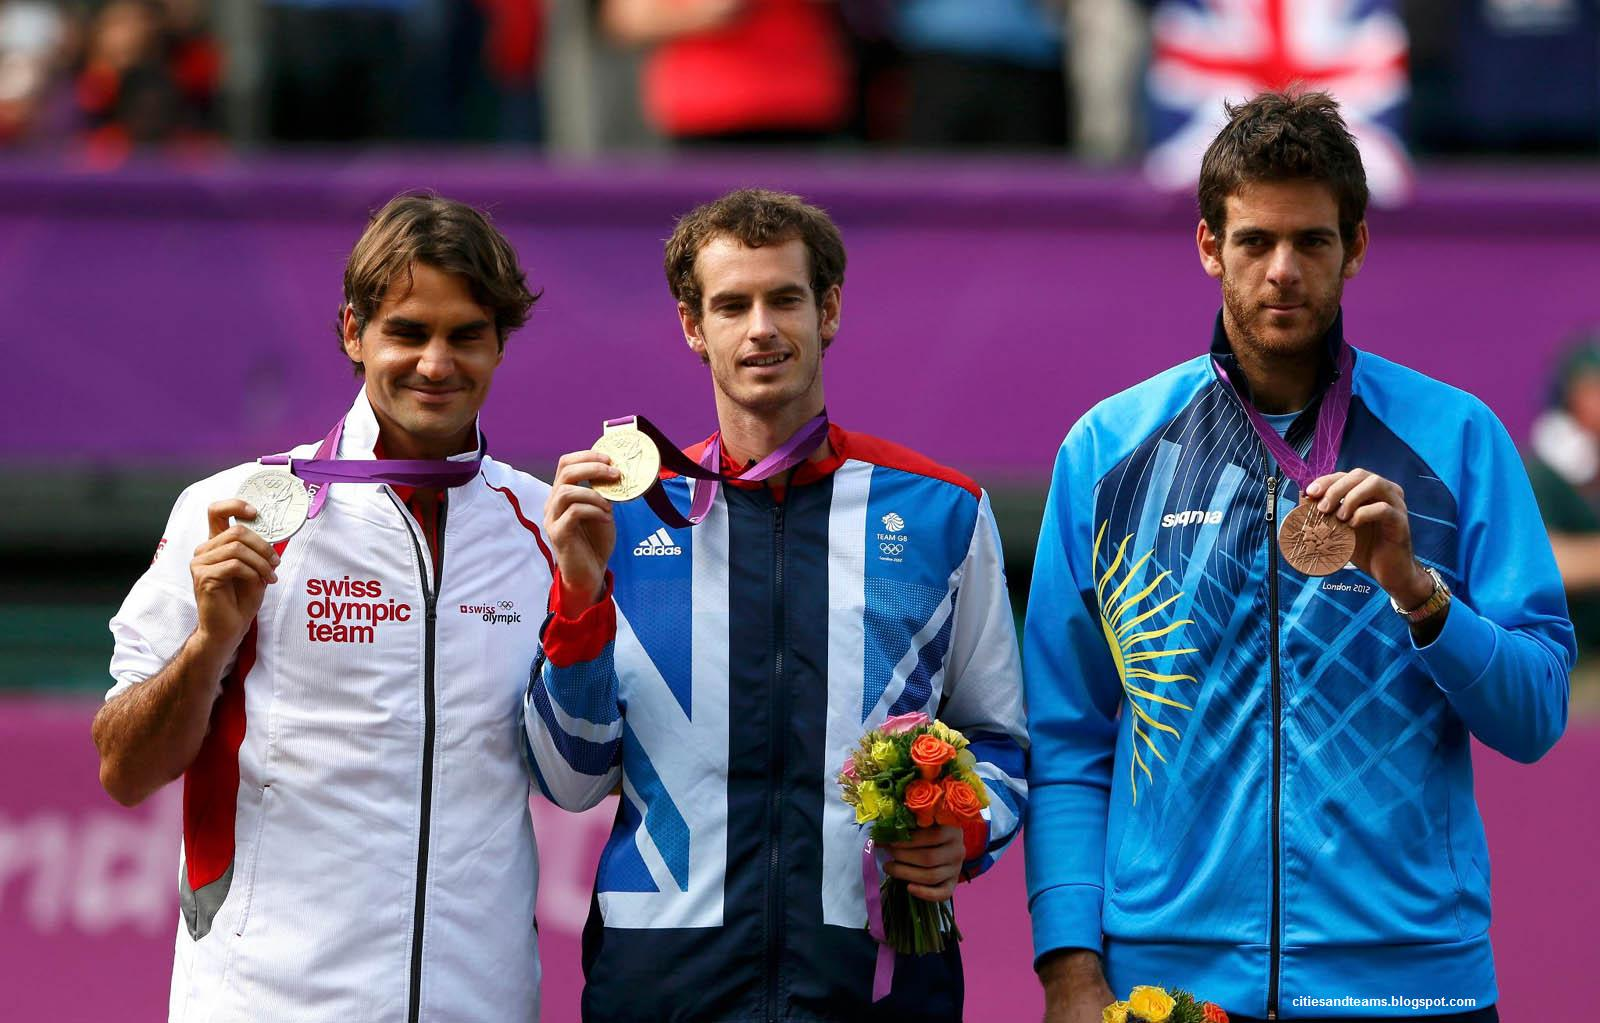 http://3.bp.blogspot.com/-tHVX10AbQSI/UCBTcL4Ia6I/AAAAAAAAHS0/L_xQ7hFQAqY/s1600/Andy_Murray_Roger_Federer_Juan_Martin_del_Potro_London_2012_Olympic_Games_Tennis_Medalists_Hd_Wallpaper_citiesandteams.blogspot.com.jpg